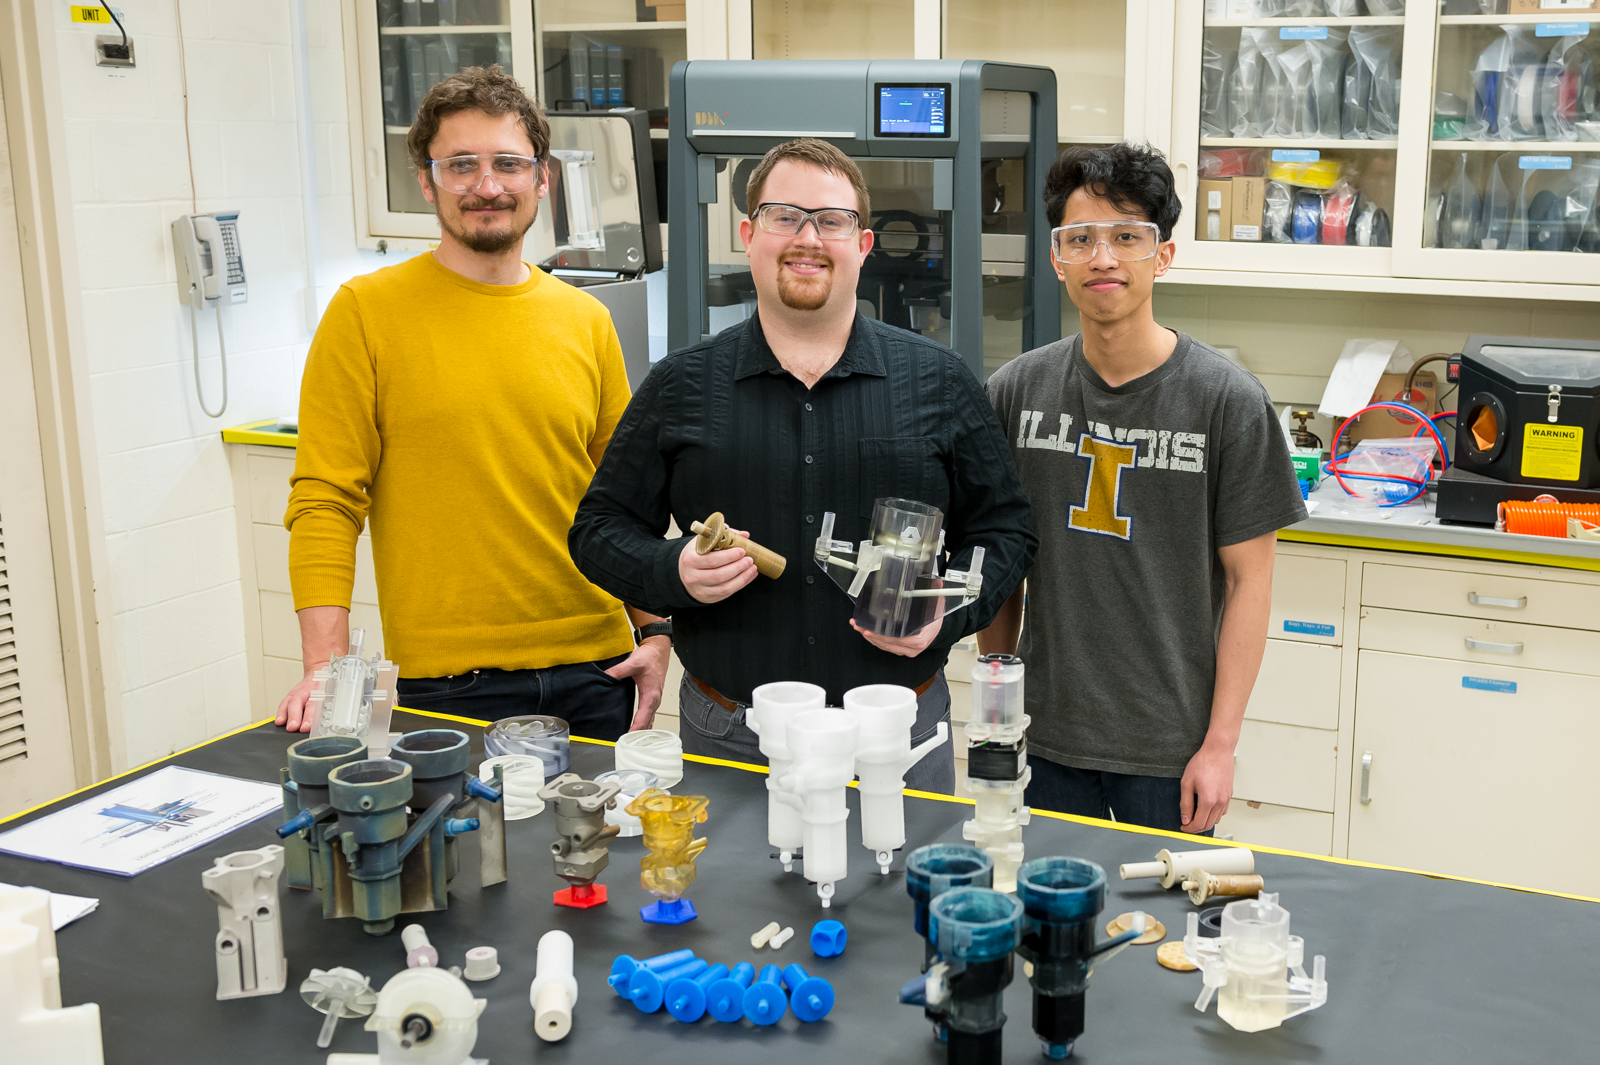 The laboratory's new 3D printing methods makes make its recycling method – pioneered in 2015 by Mo-99 program manager Peter Tkac (left) and others – faster, more reliable, and more cost effective. Also shown: Peter Kozak (center) and Brian Saboriendo. Not shown: Alex Brown. (Image by Argonne National Laboratory.)